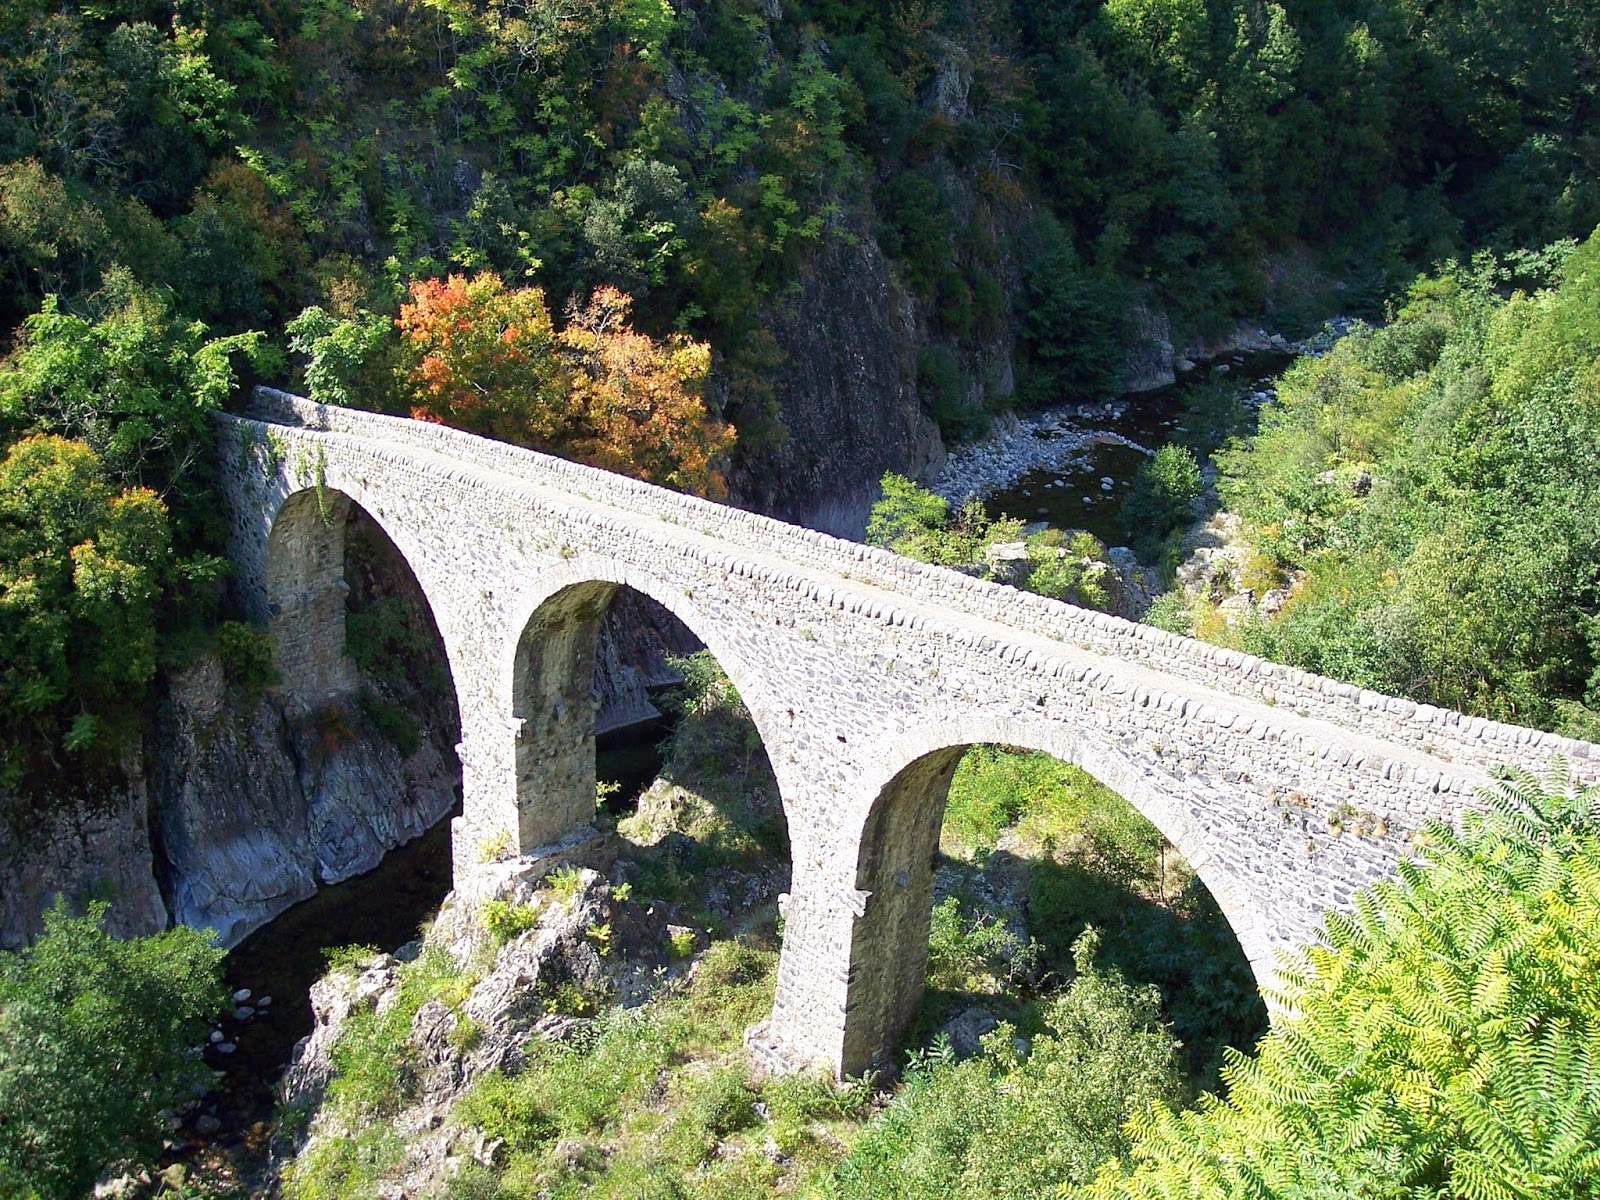 Ardeche region, France, medieval bridge